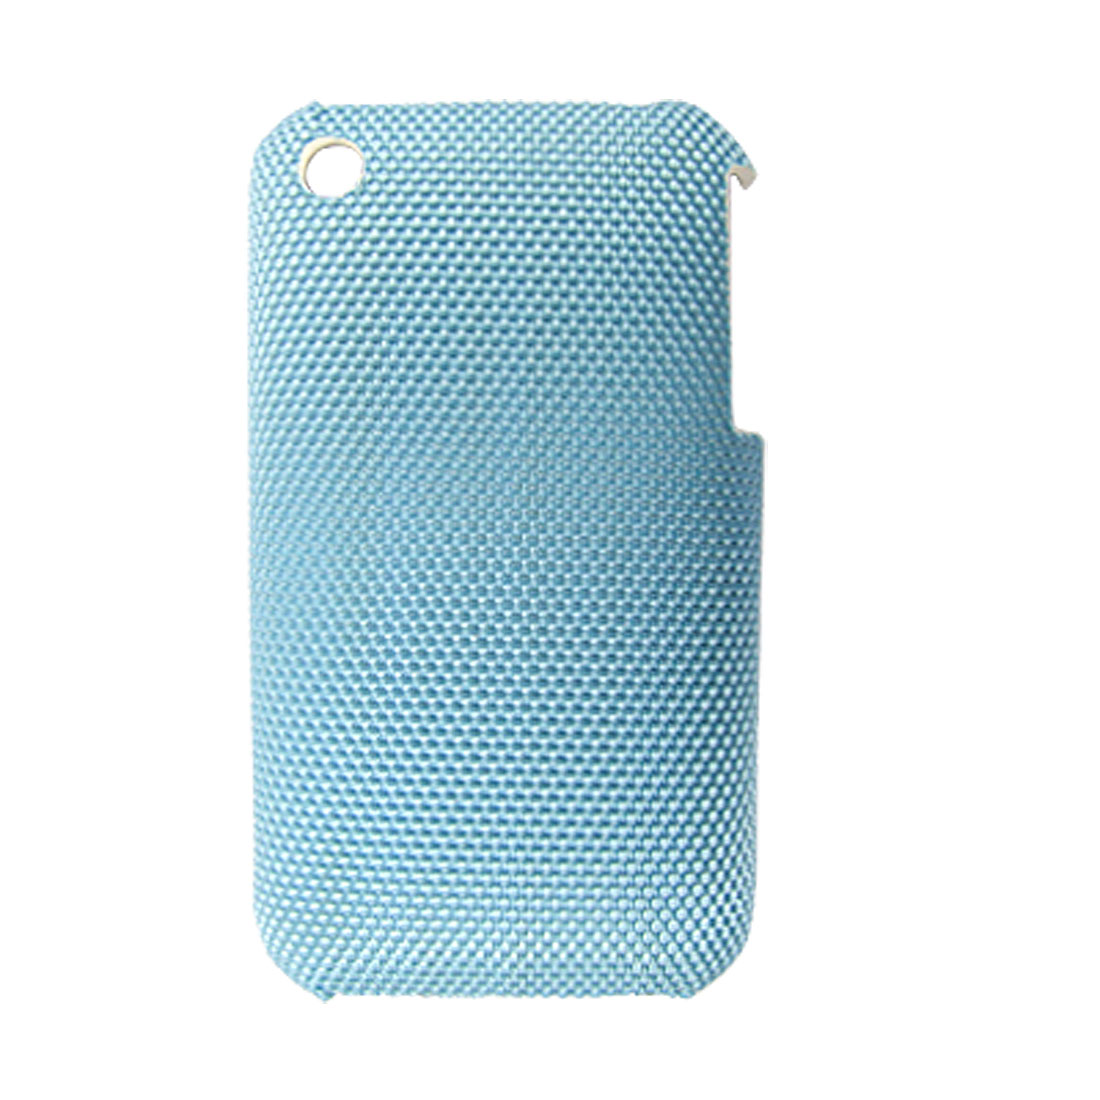 Mobile Non-slip Hard Plastic Back Shield Protector Cover Case for Apple iPhone 3G